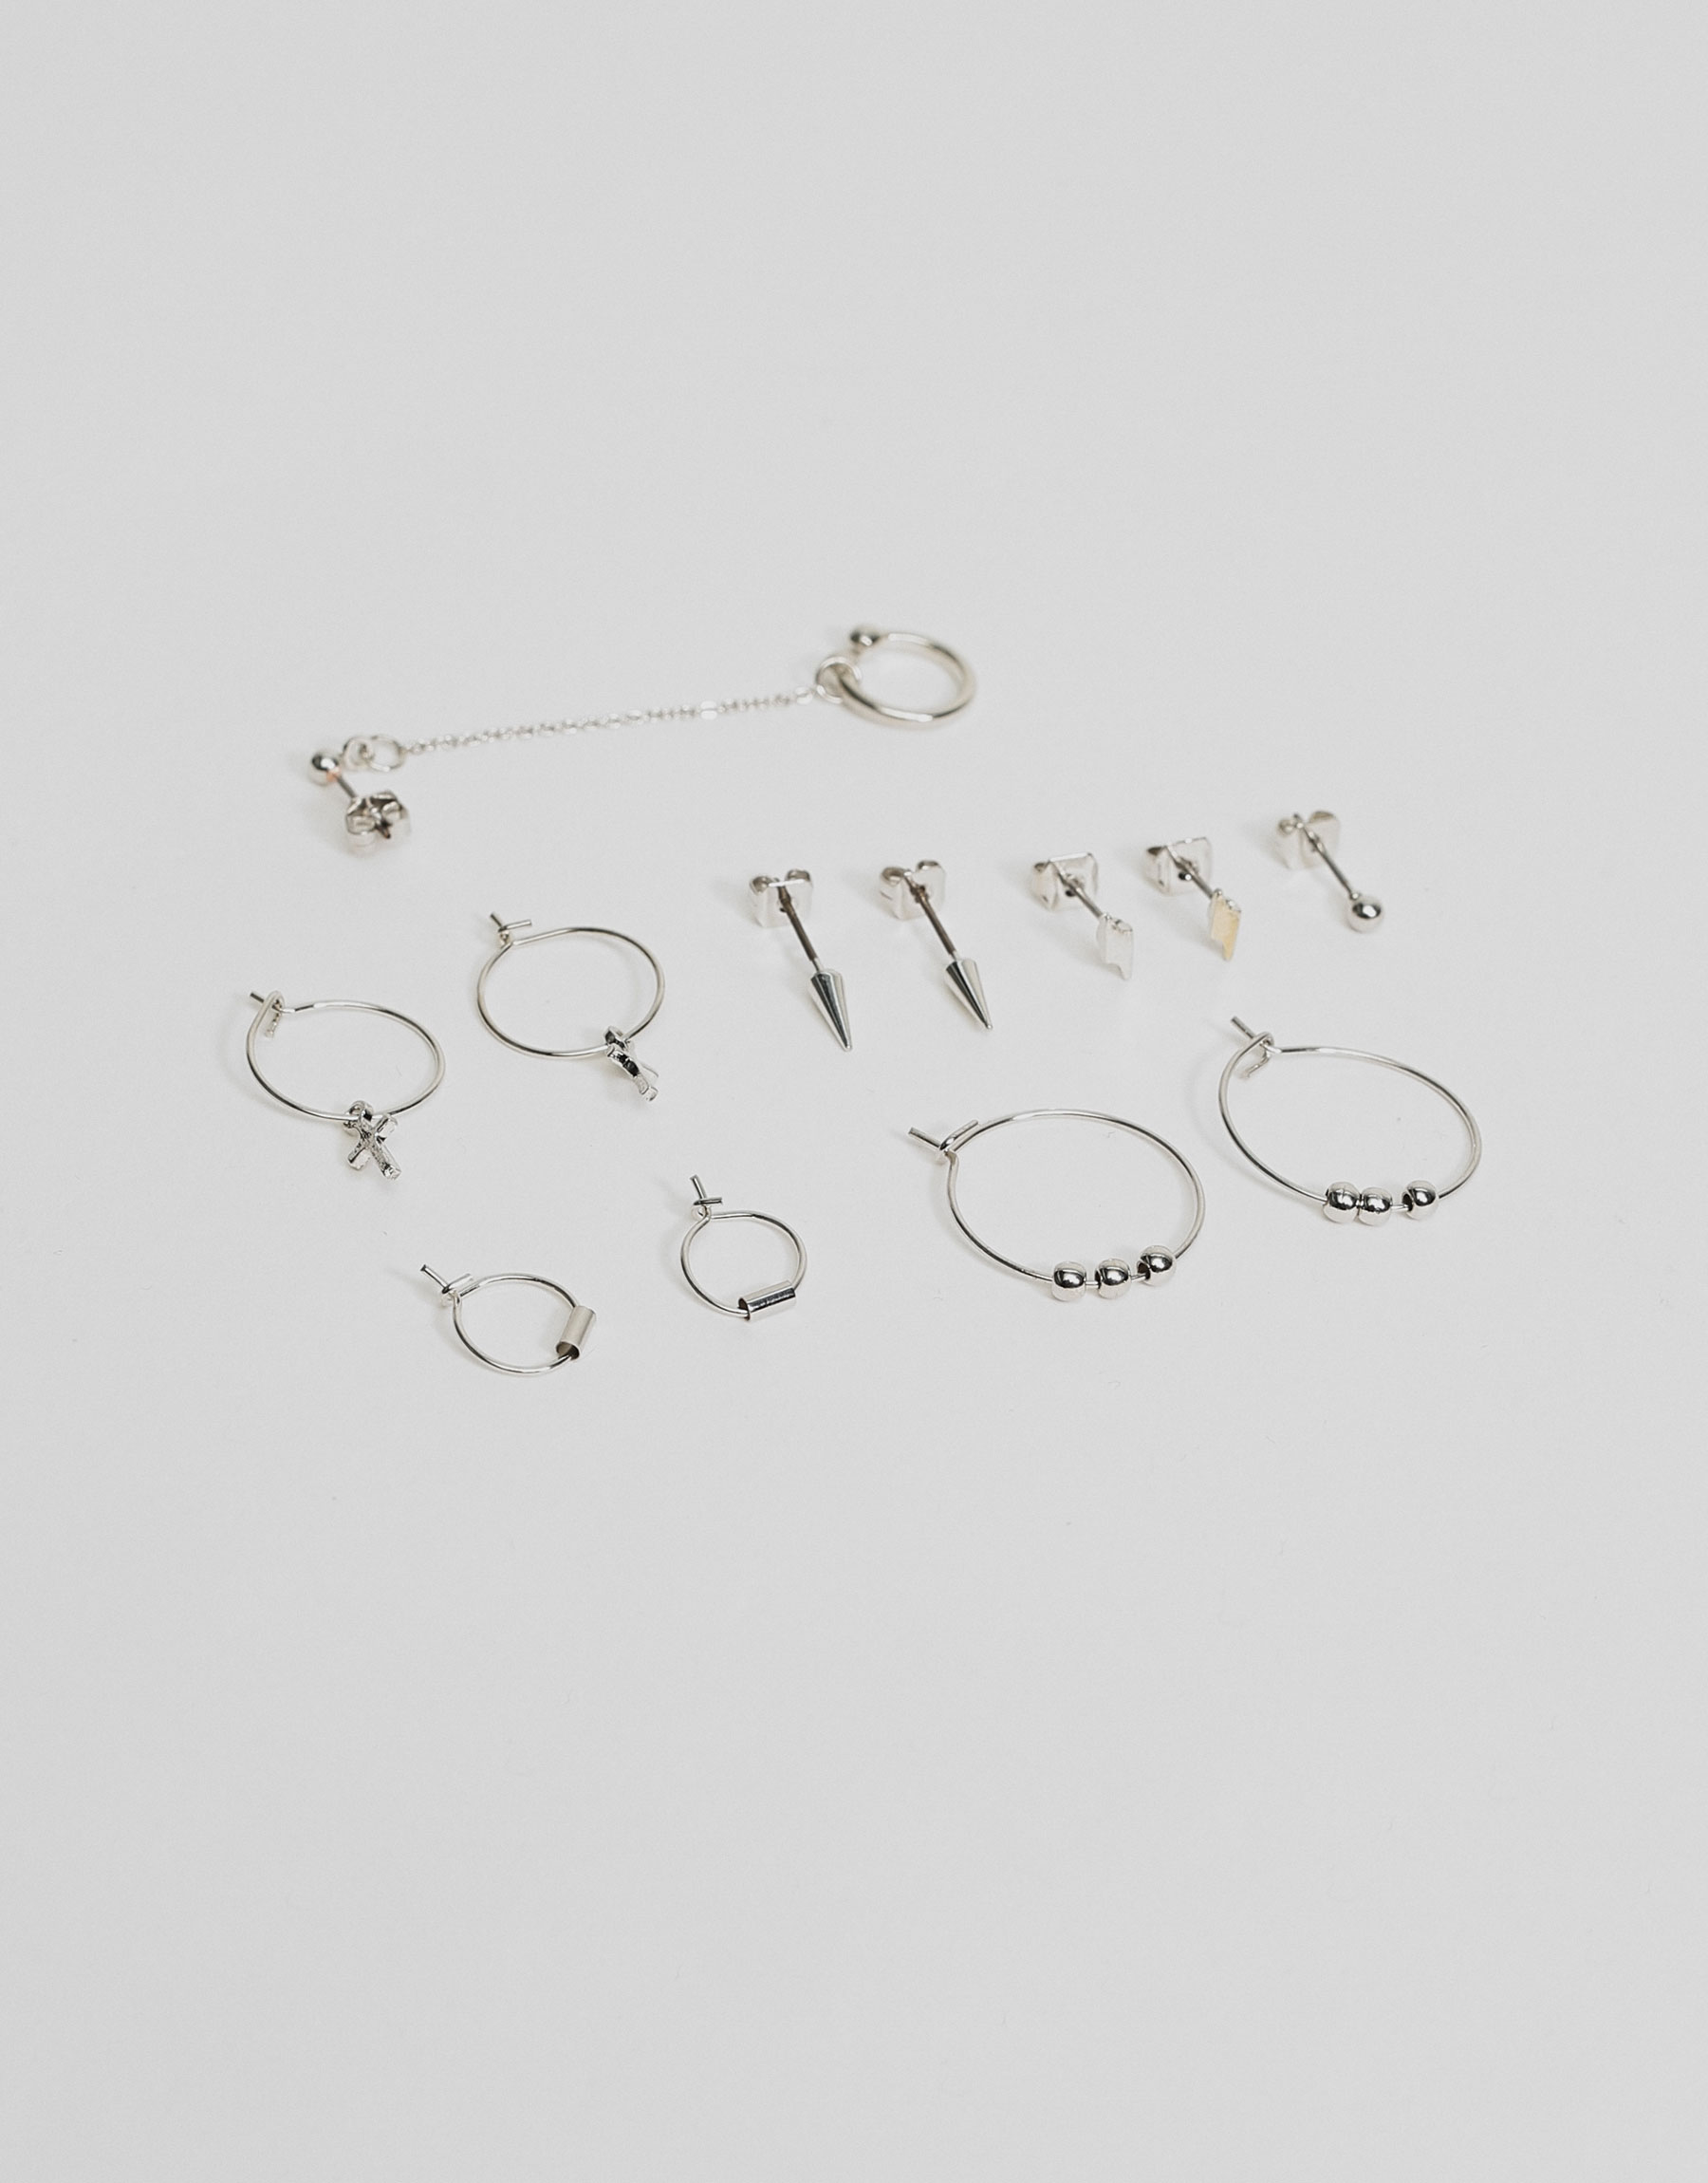 6-Pack of earcuff earrings